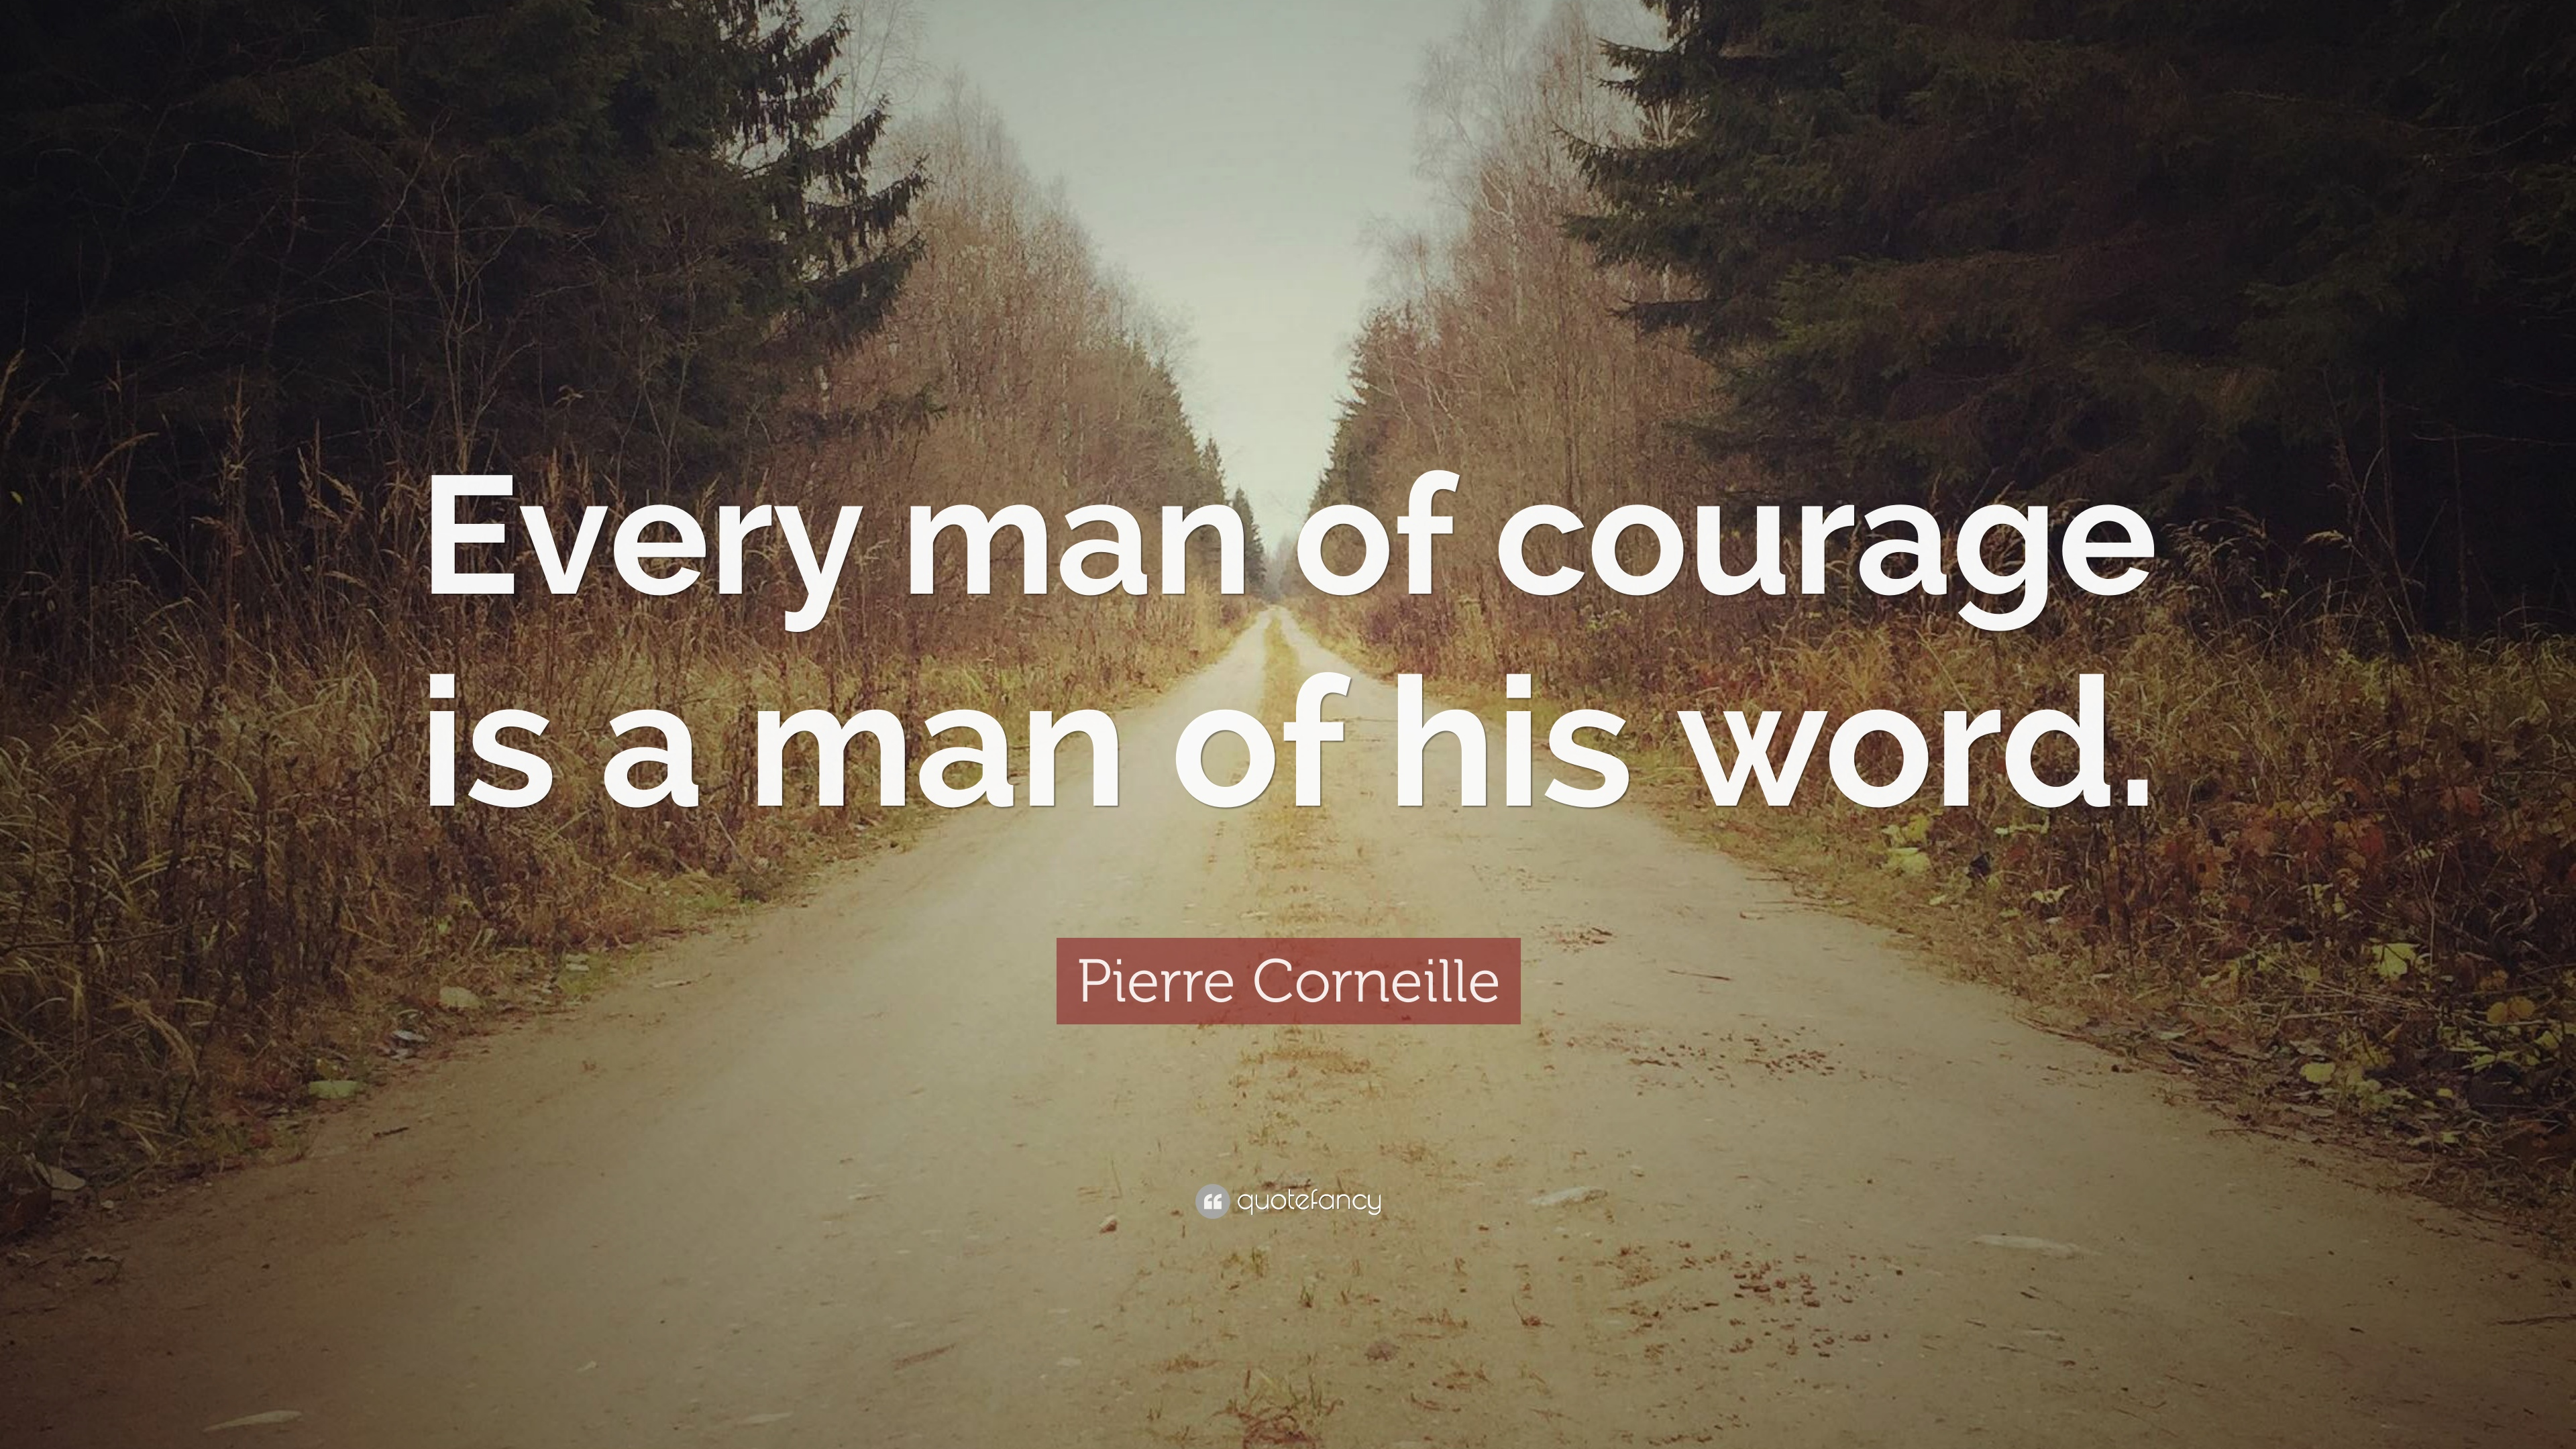 Pierre Corneille Quote Every Man Of Courage Is A Man Of His Word